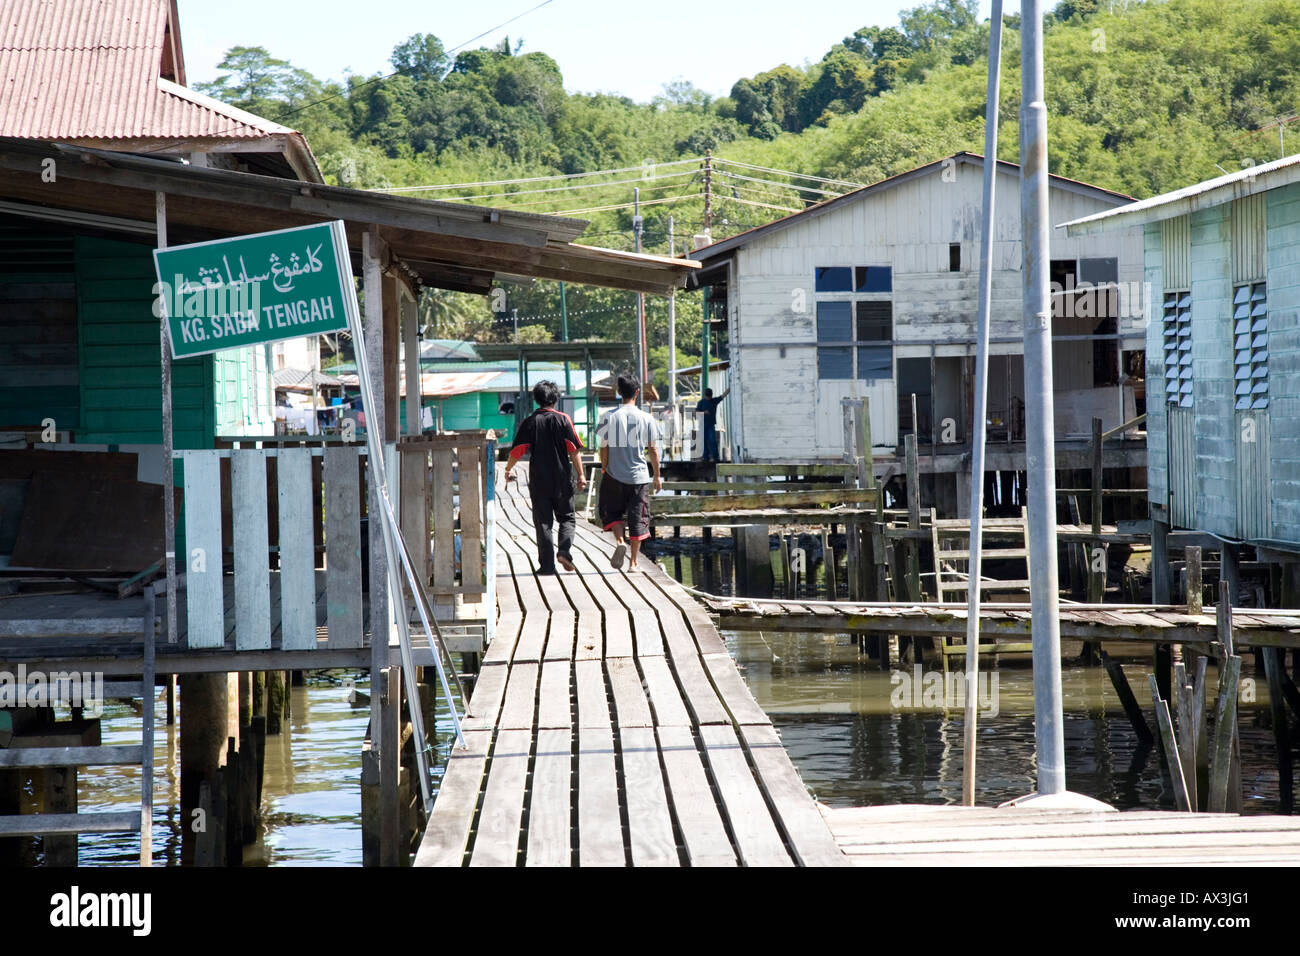 Kampung Ayer, Water Stilts Village, Bandar Begawan Brunei Darussalam - Stock Image